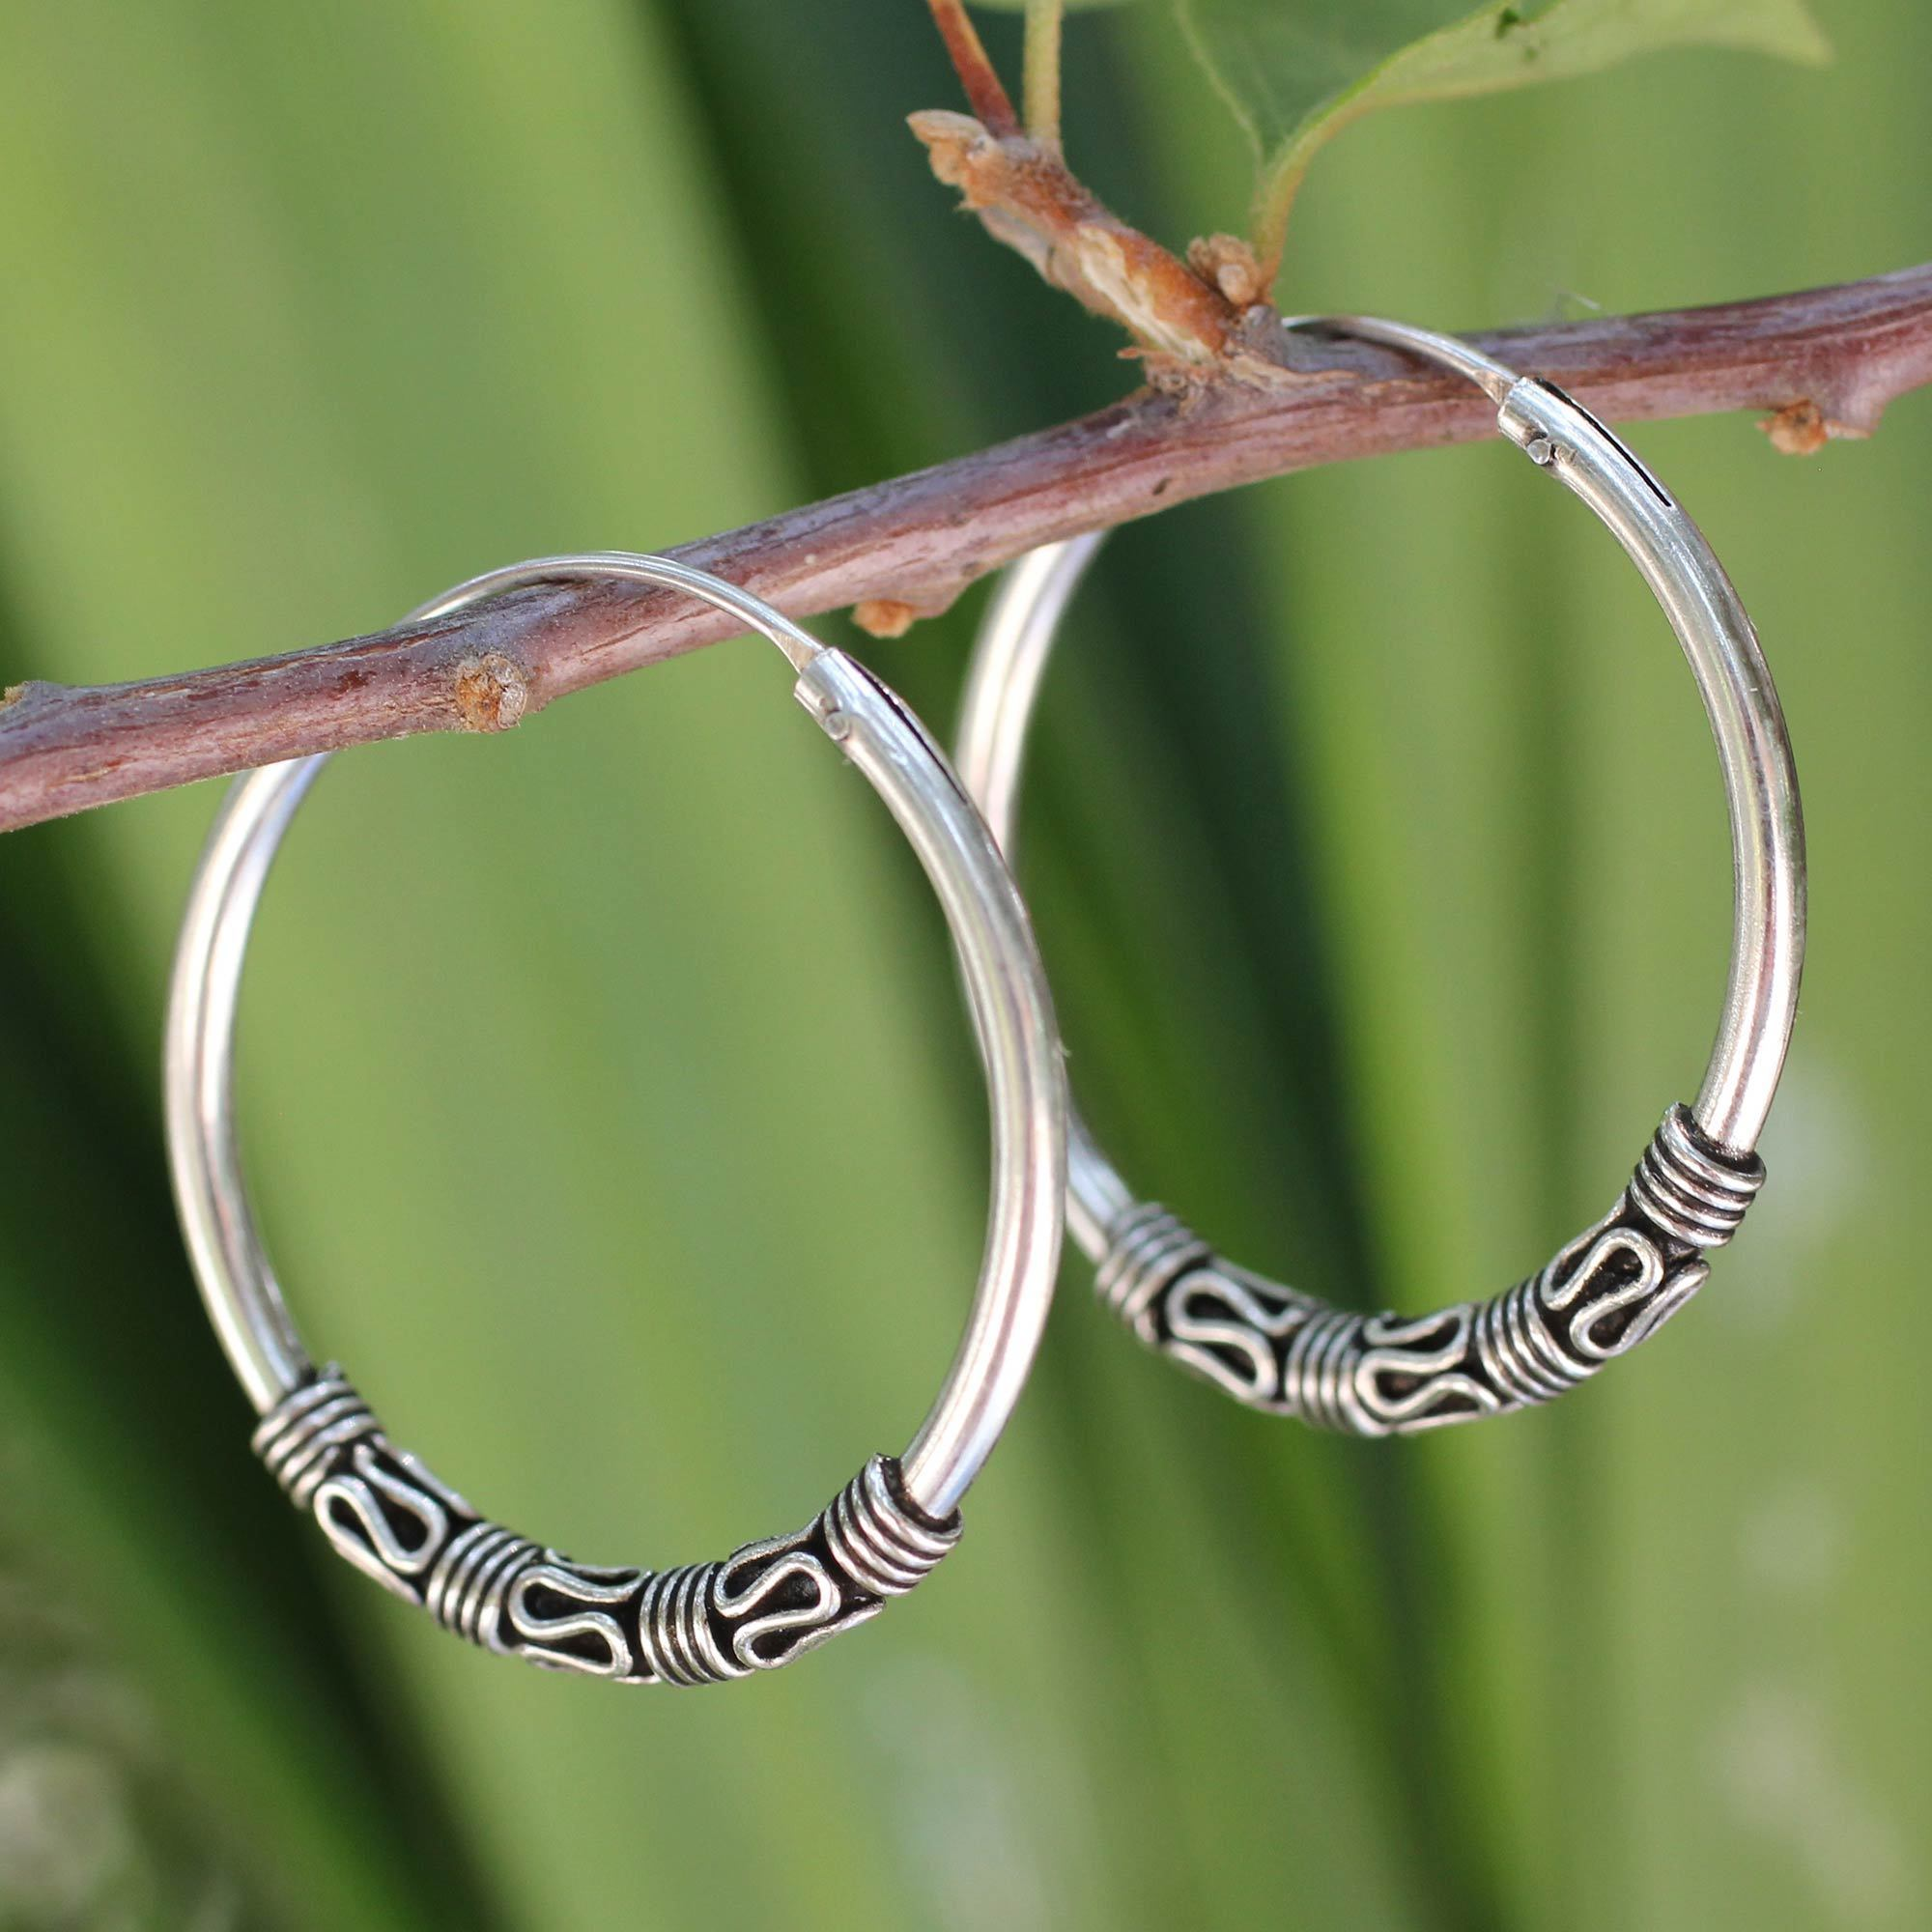 Handmade Sterling Silver Traditional Thai Earrings Thailand Free Shipping On Orders Over 45 17442689